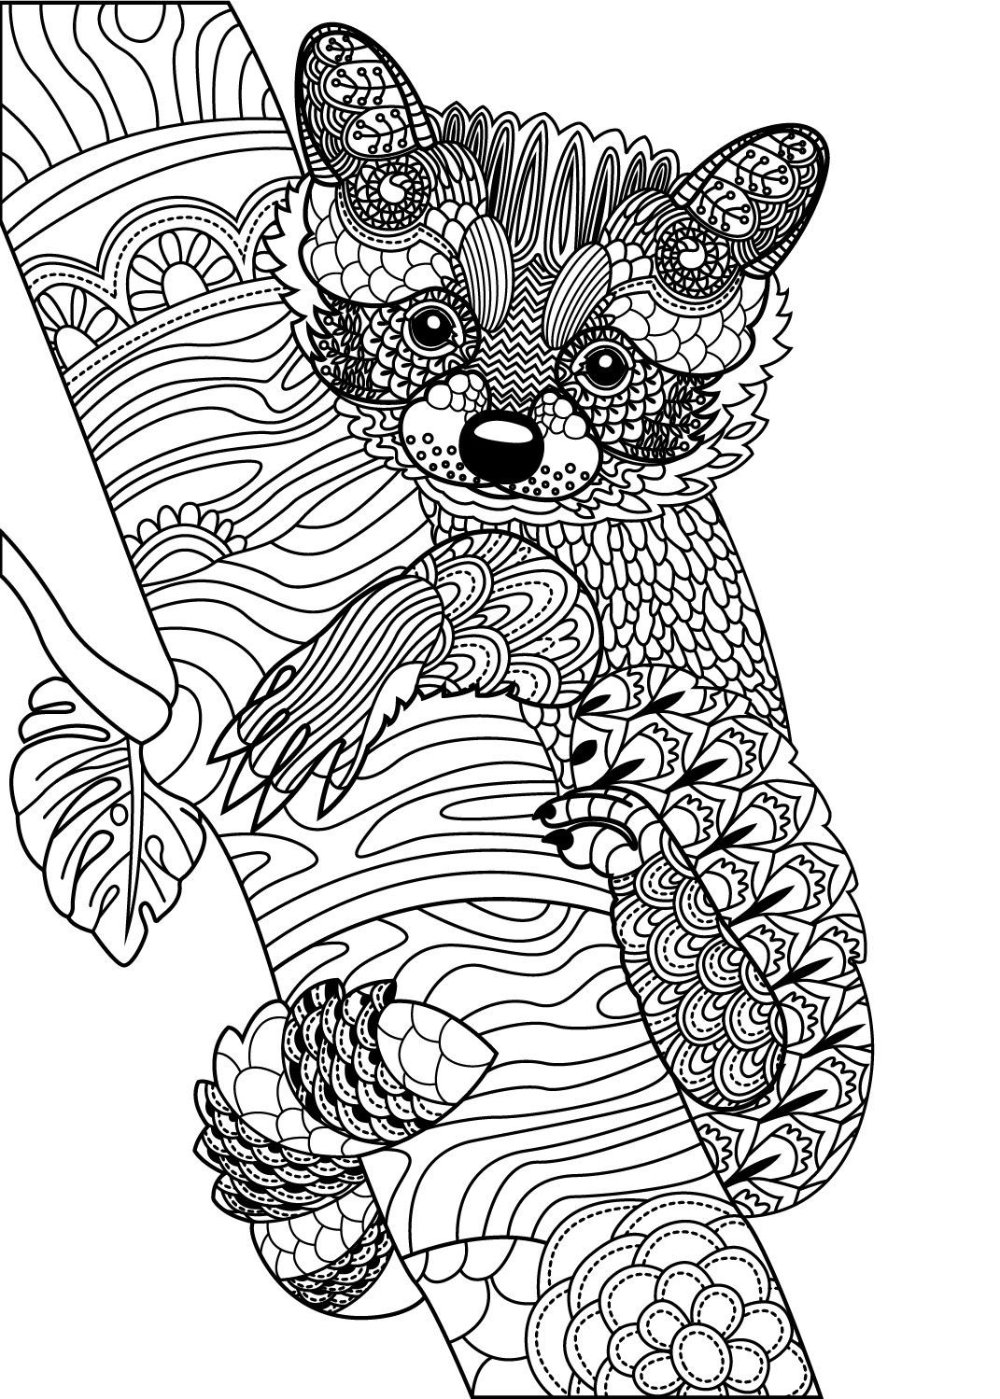 Coloring Ideas Zentangle Animal Coloring Sheets Awesome Wild Animals To Color Of Image Inspirat Animal Coloring Pages Bird Coloring Pages Bear Coloring Pages